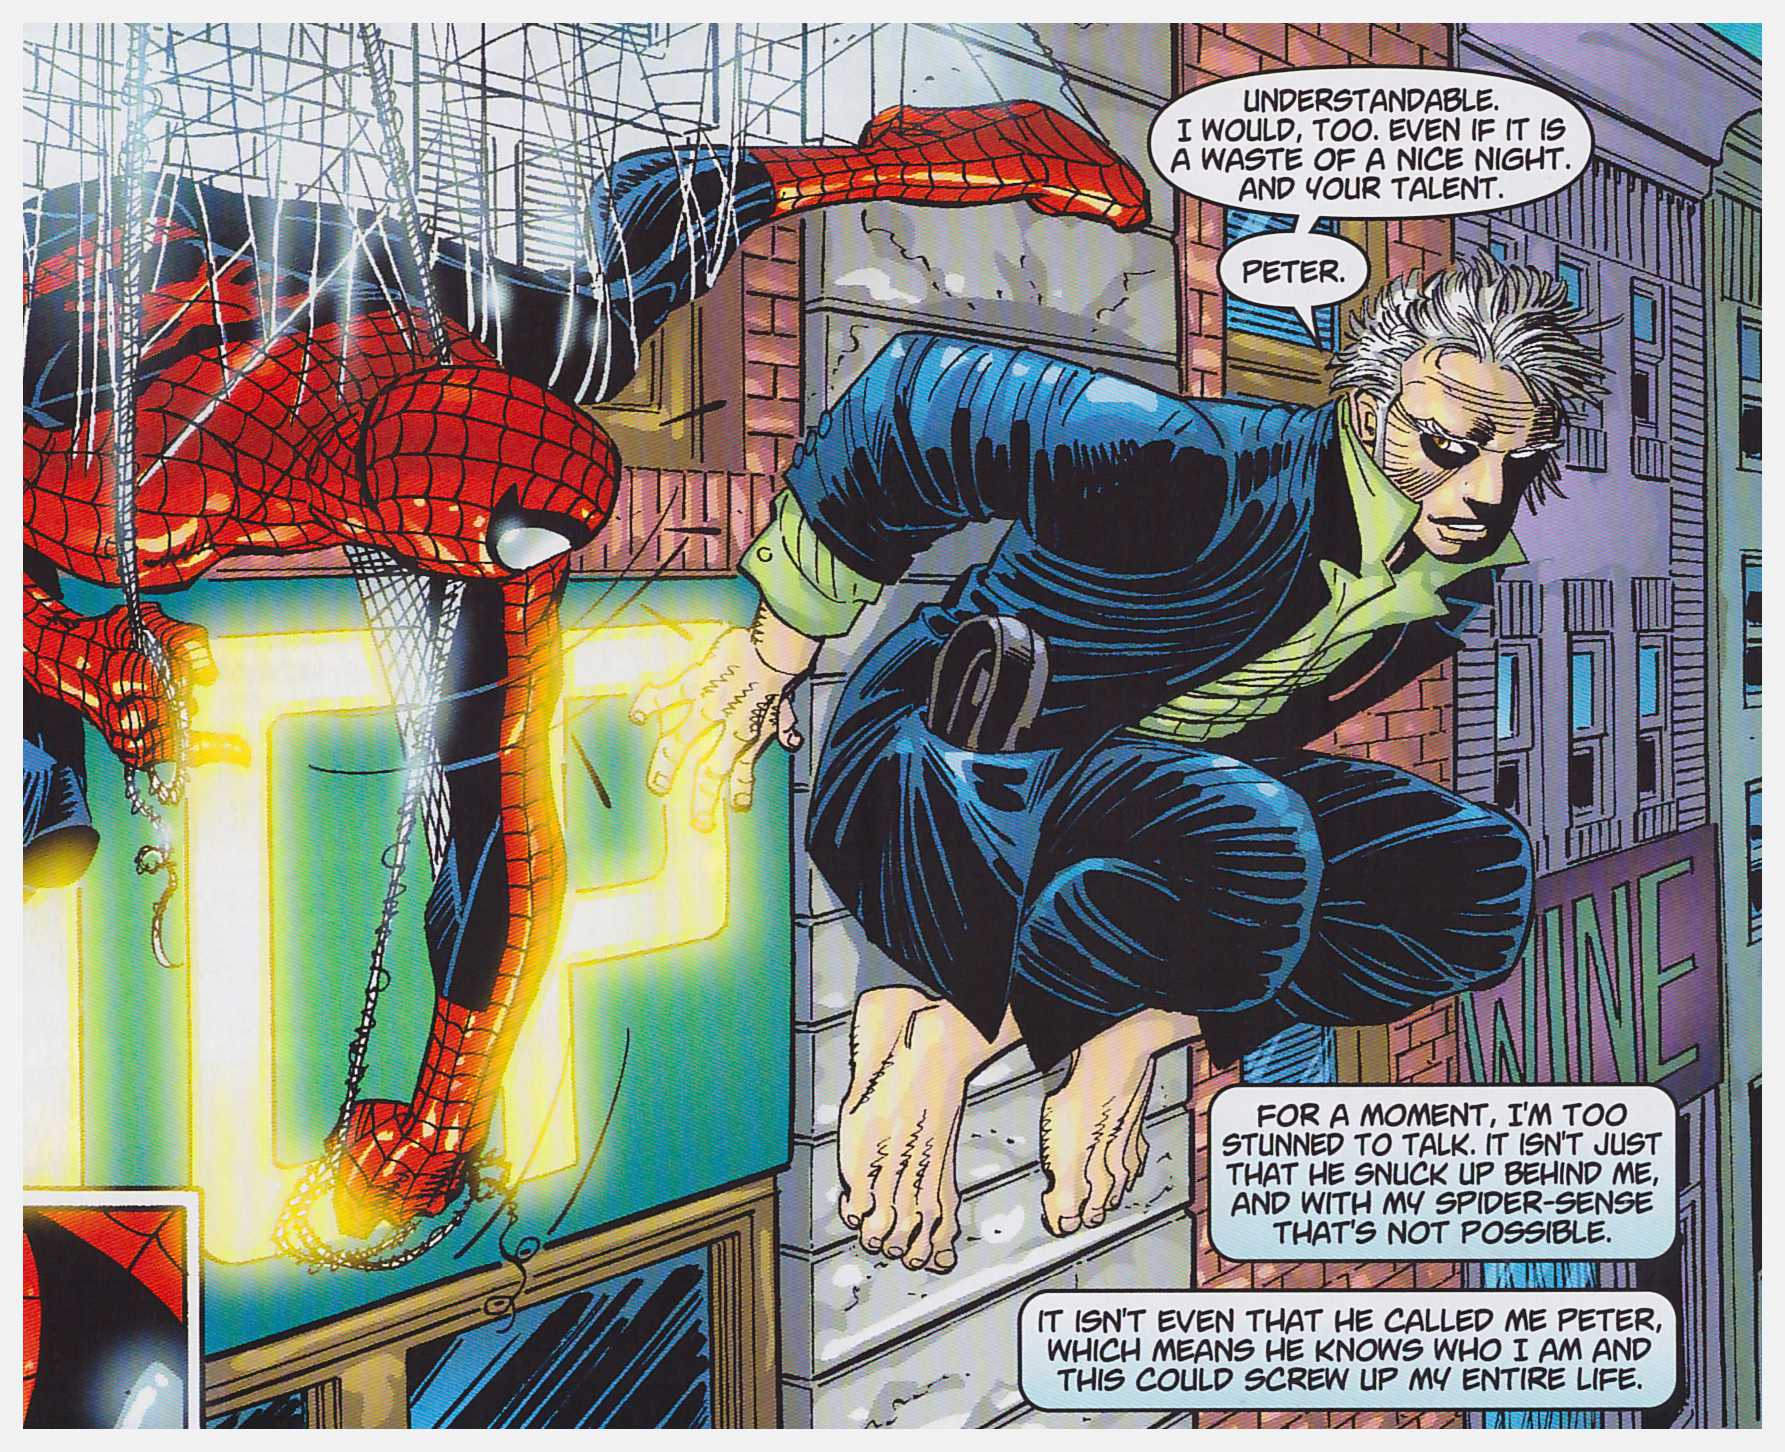 Spider-Man by JMS review